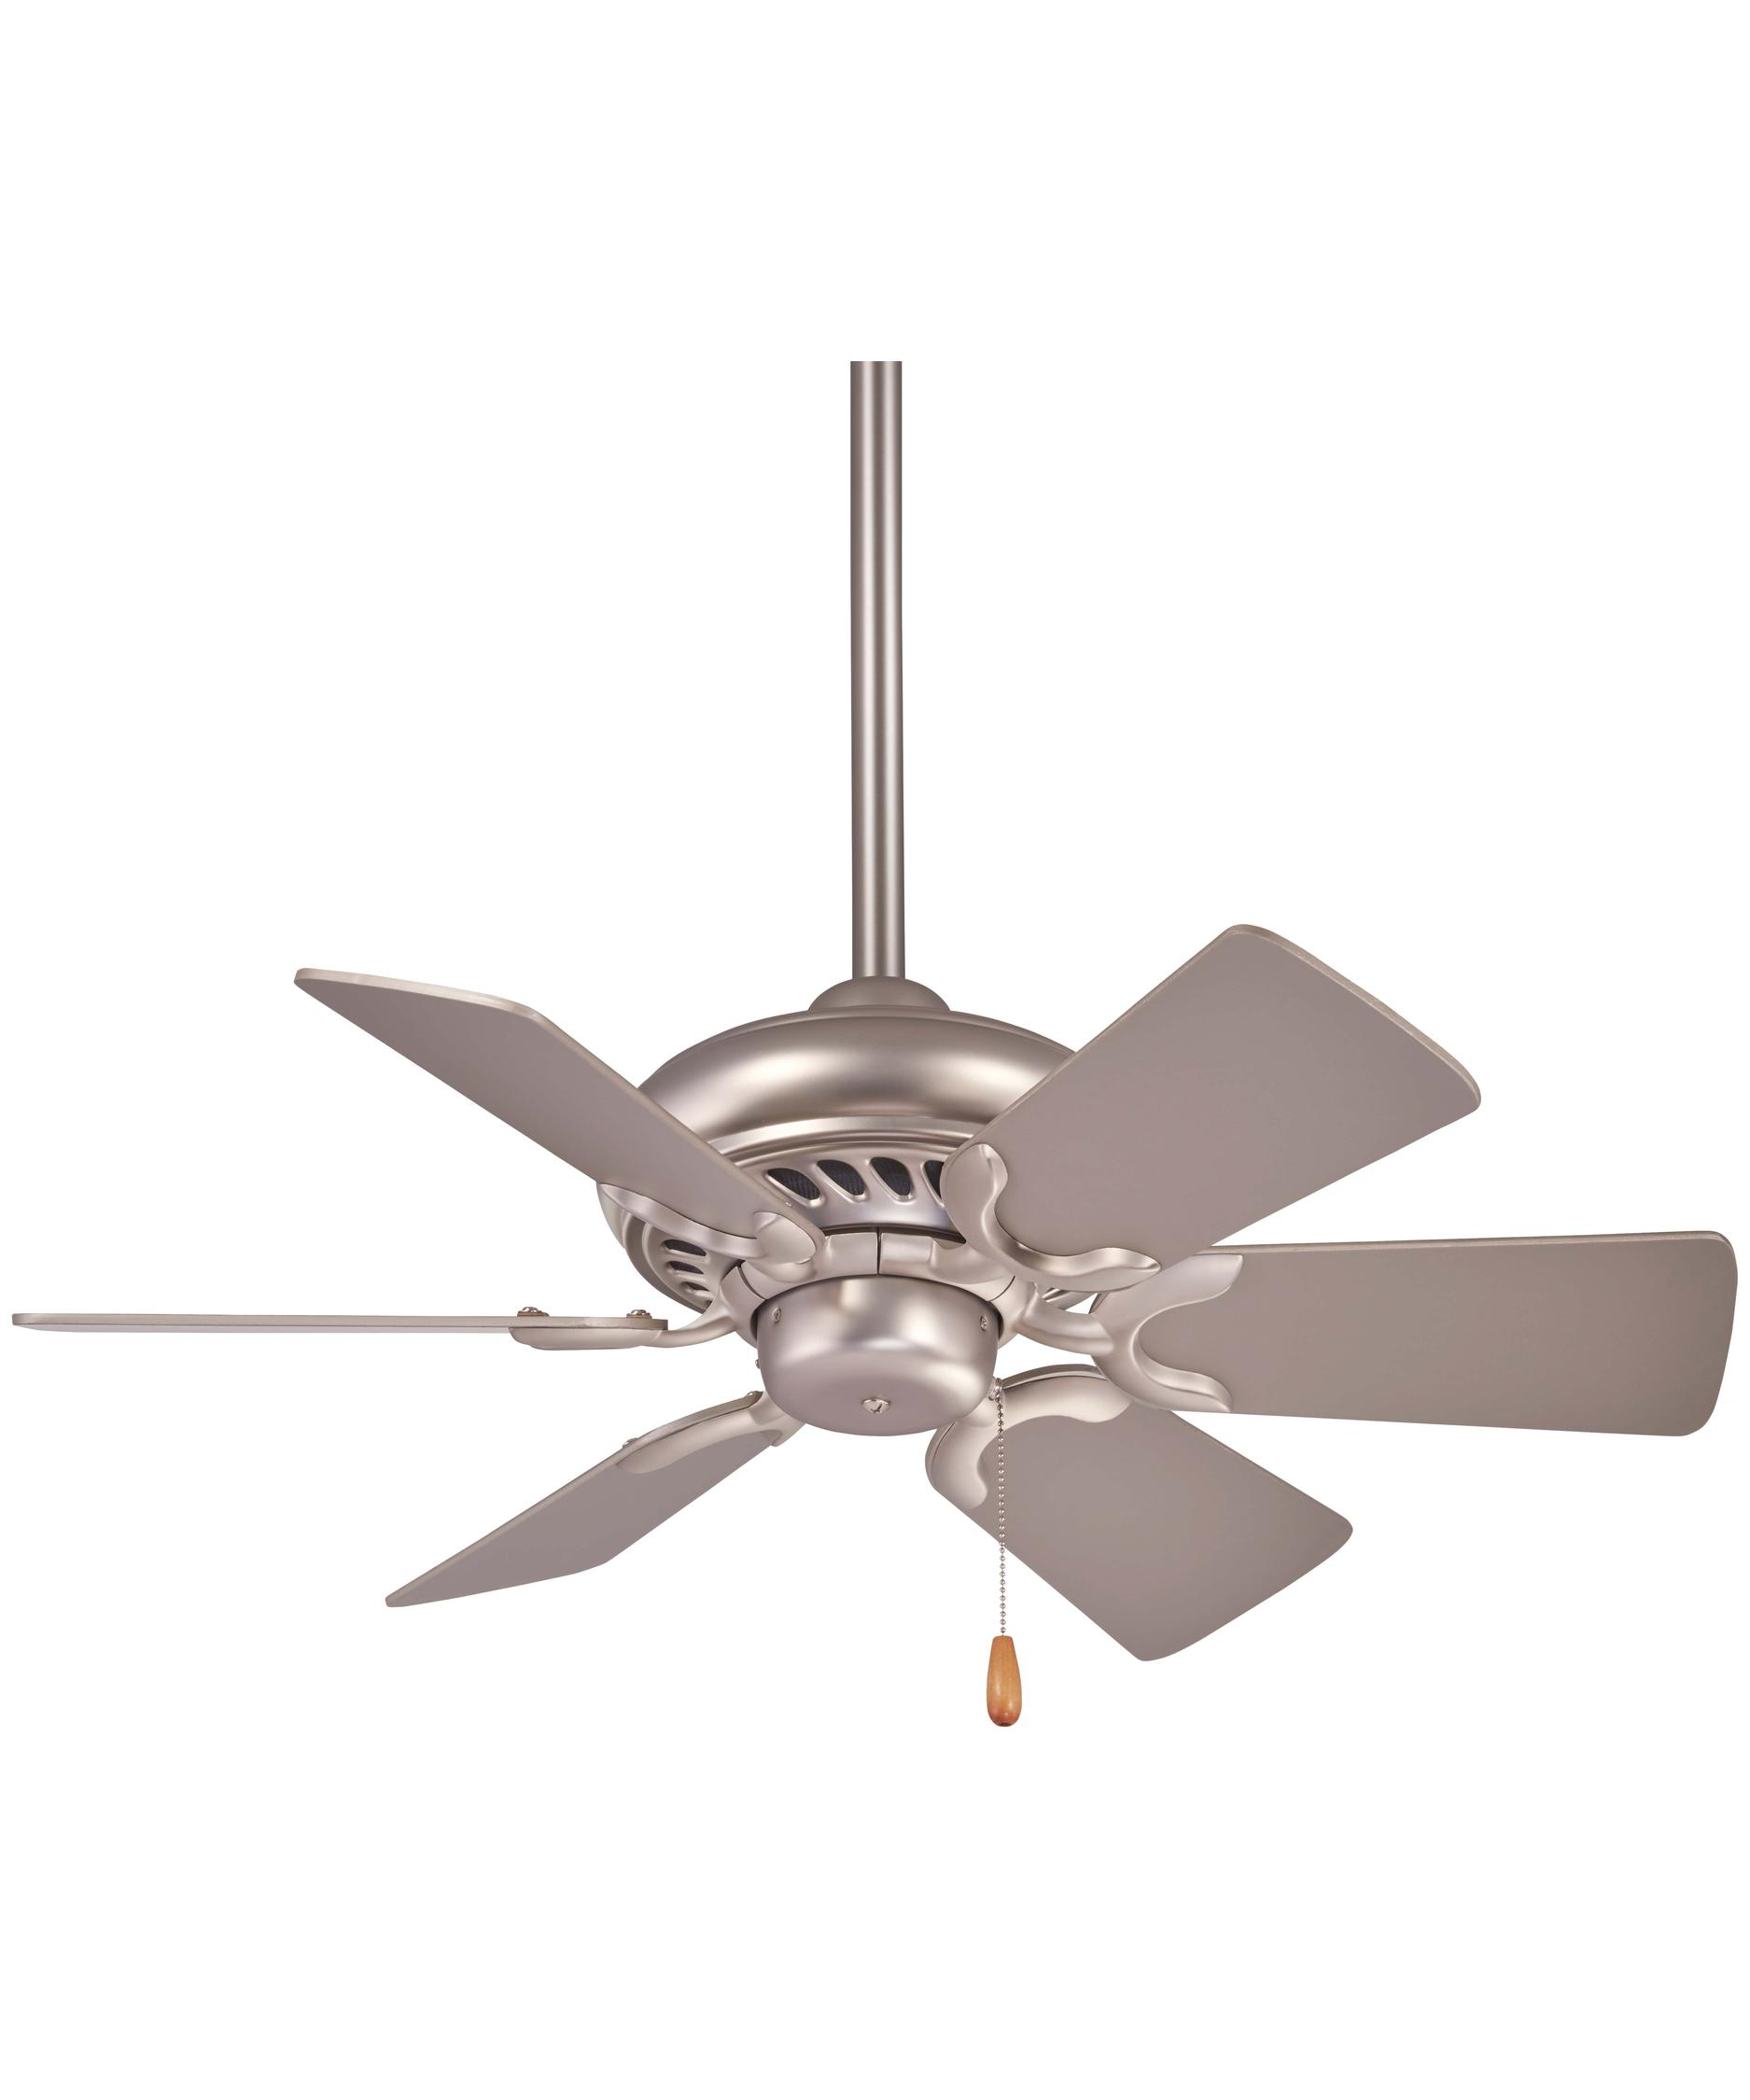 Minka Aire Supra 32 Inch 6 Blade Ceiling Fan | Capitol Lighting 1 ...:Shown in Brushed Steel finish,Lighting